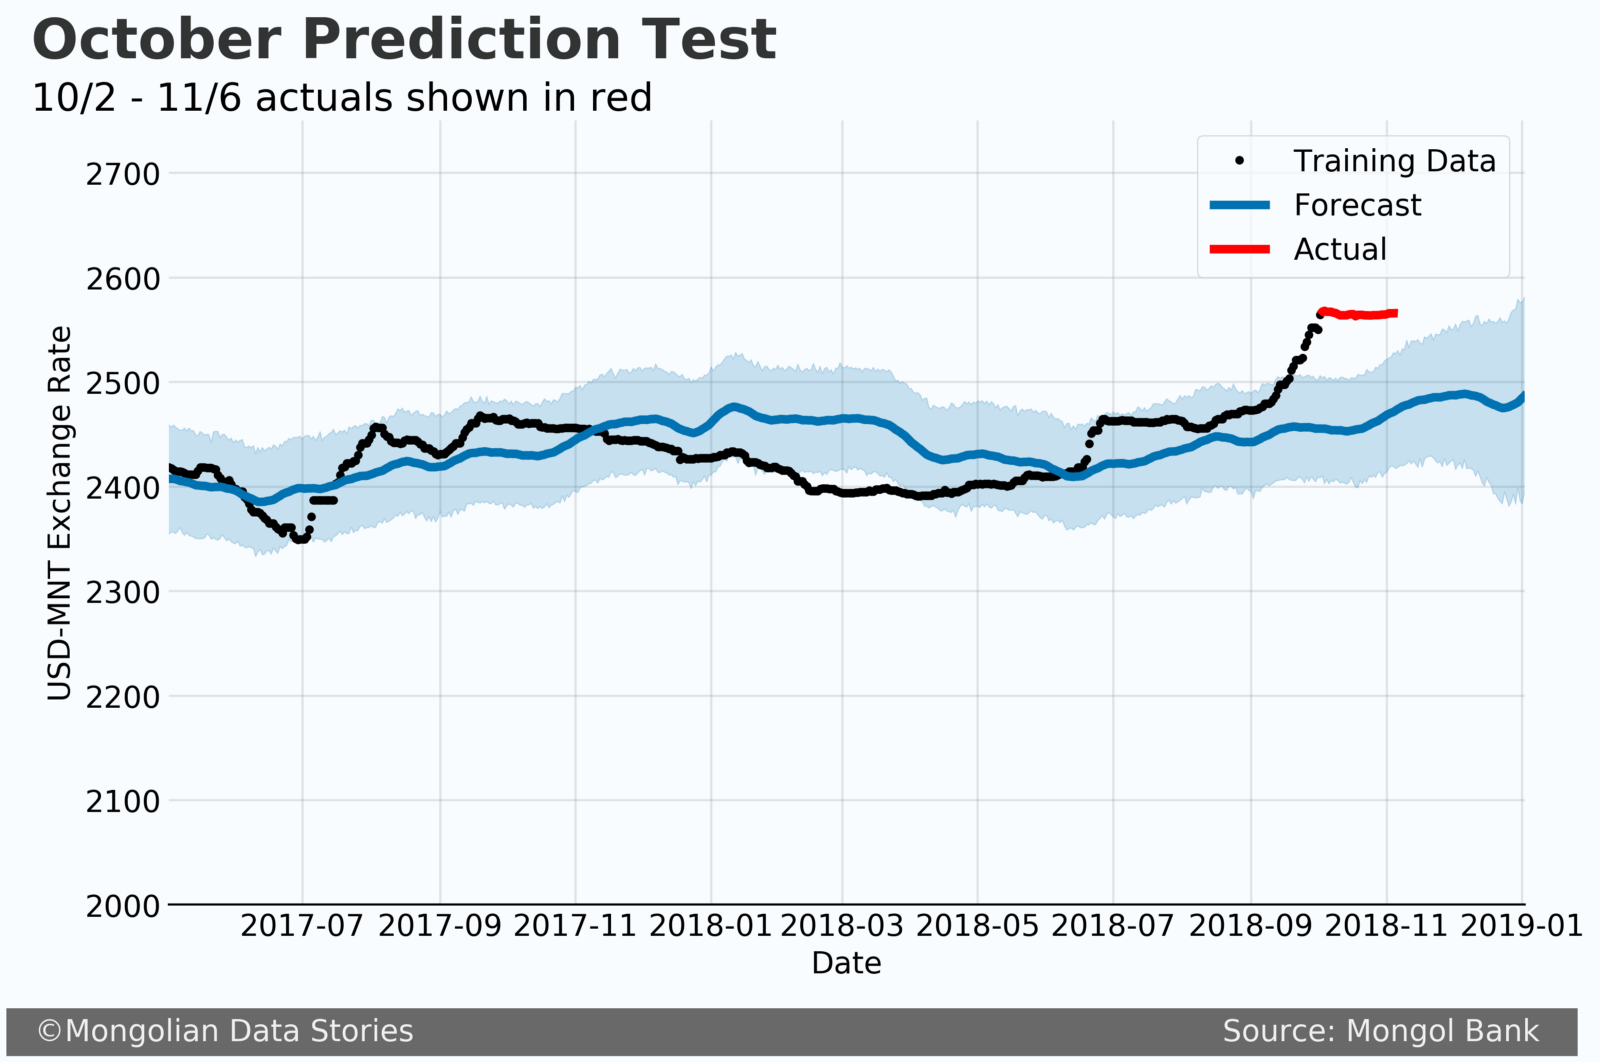 It Is Clear That We Are Outside The Confidence Interval This Could Mean Very Off In Our Forecast Or Future Exchange Rate Fall Back